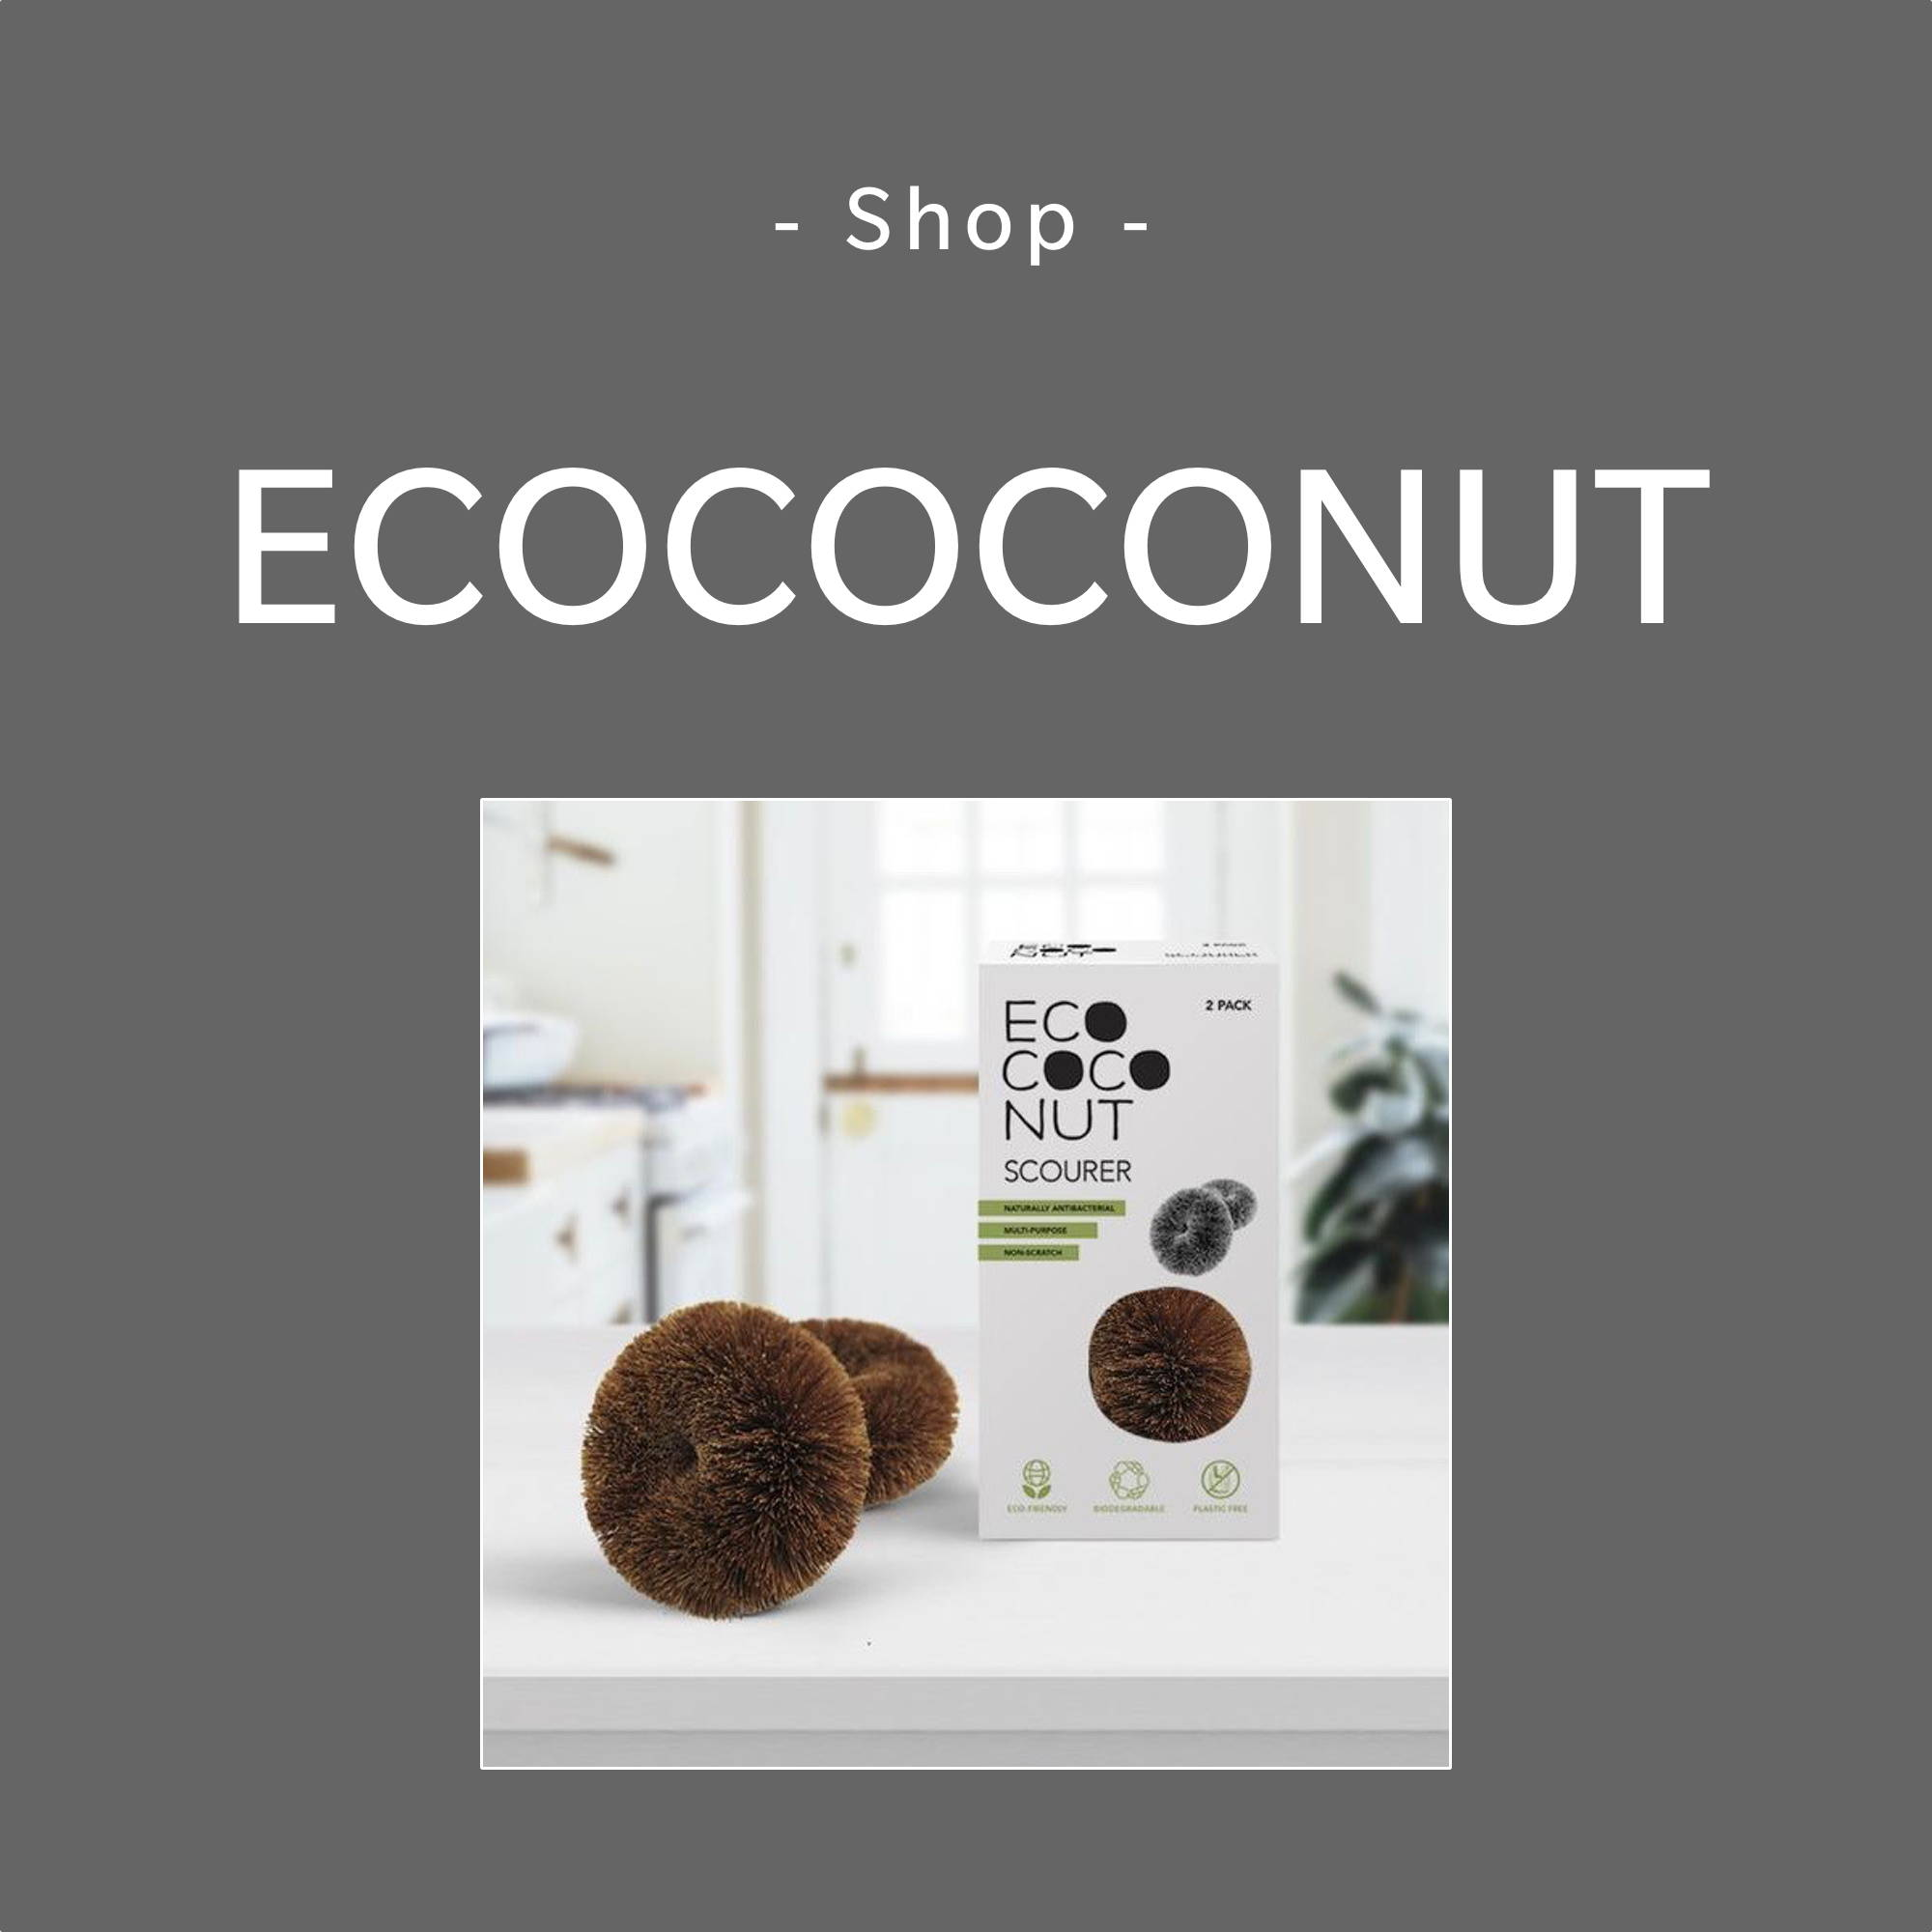 Ecococonut Brand Page